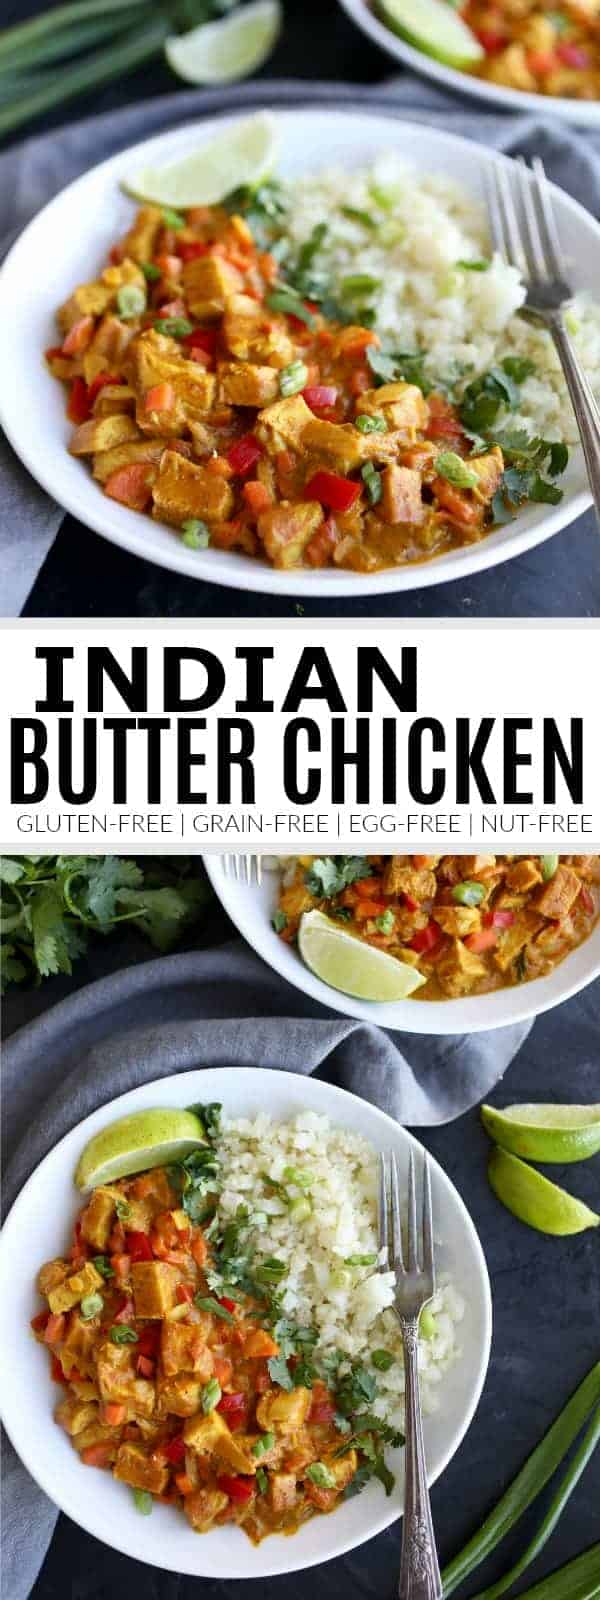 Pinterest image for Indian butter chicken